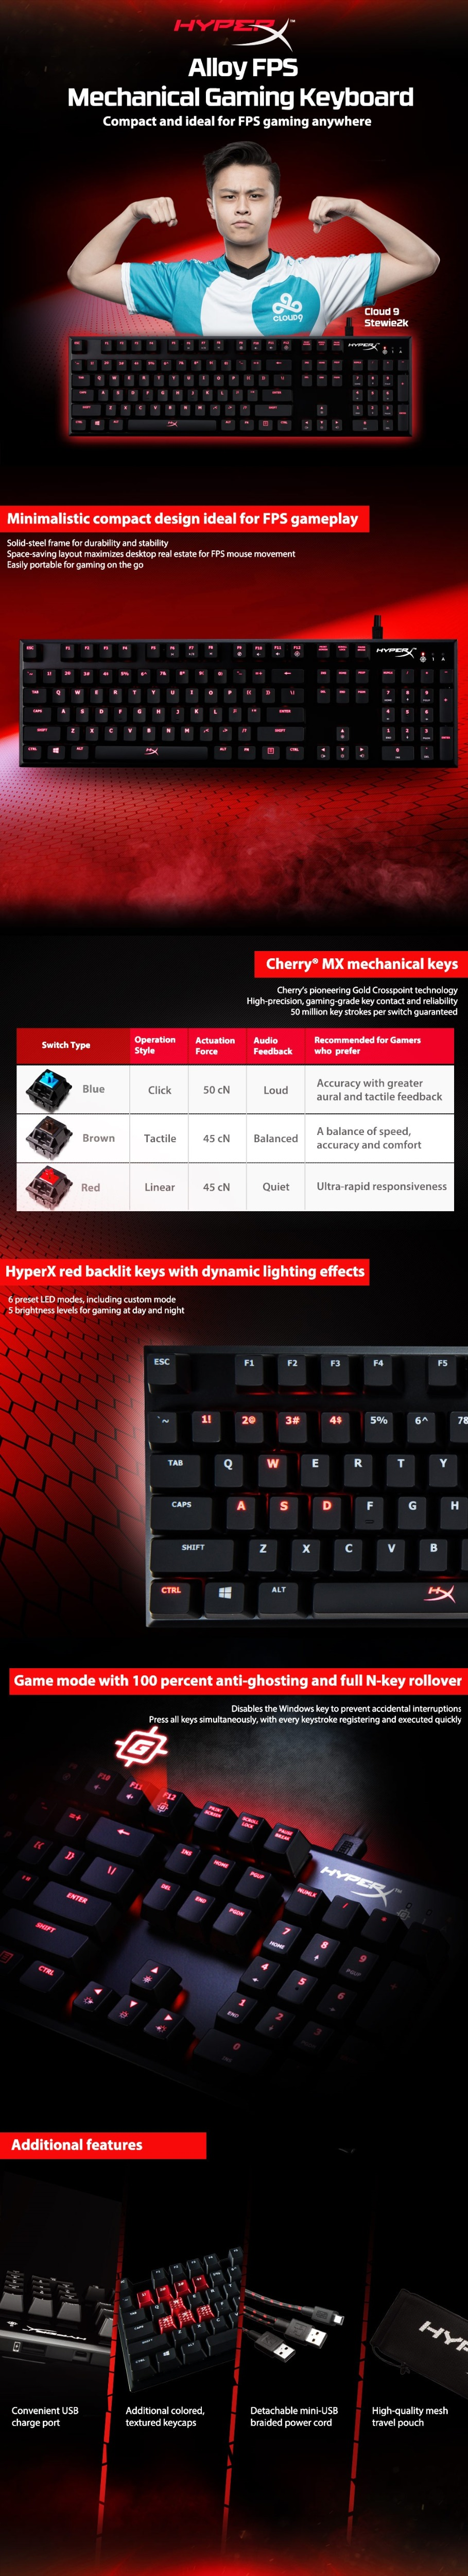 Kingston HyperX Alloy FPS E-sports Game Mechanical Keyboard Cherry Axis Red Axis Camshaft USB Wired Backlit Keyboard